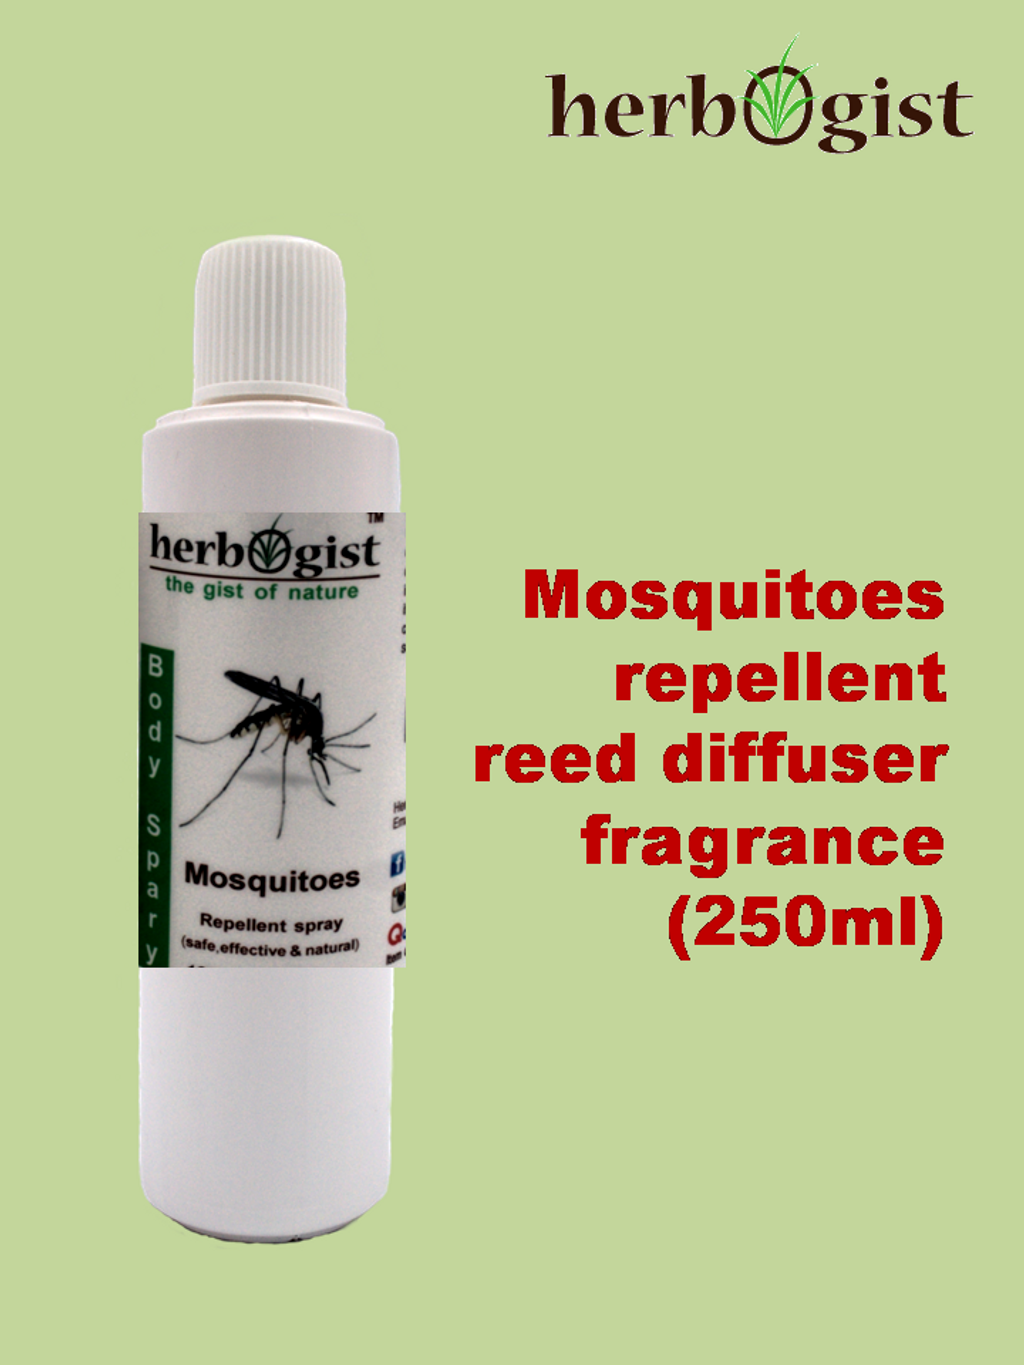 mosquitoes  new reed diffuser fragrance 250ml promo.png